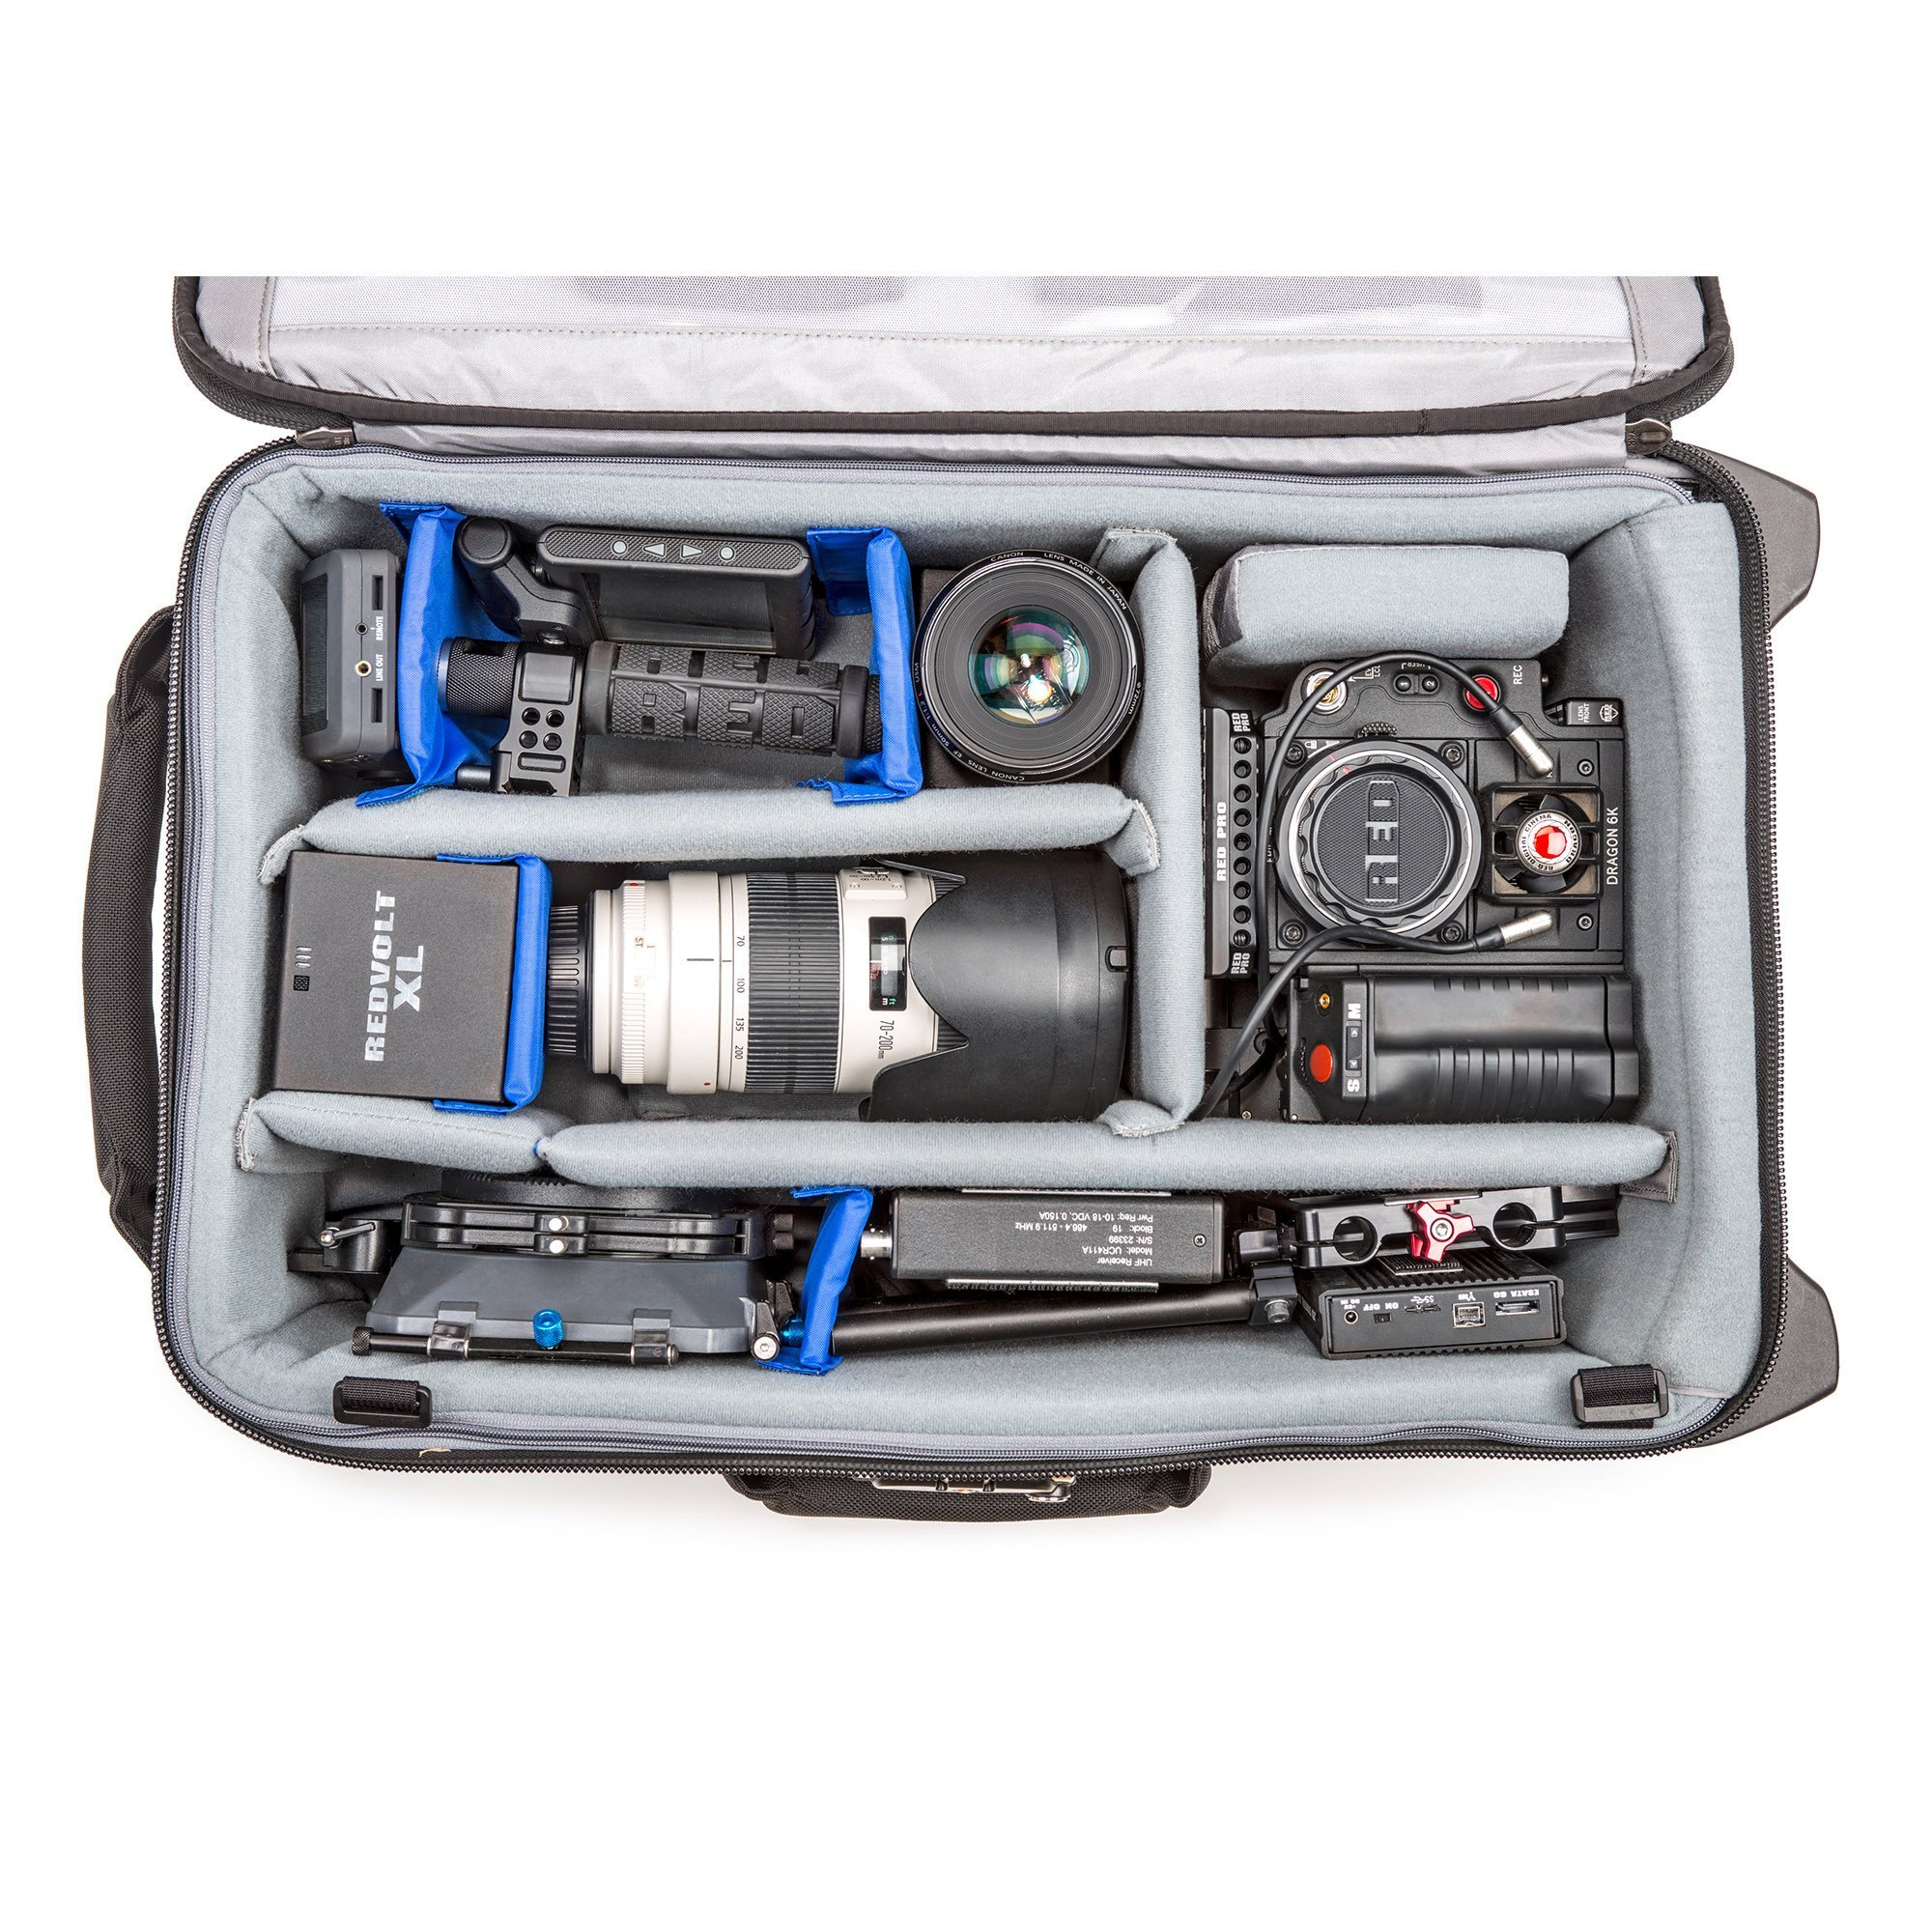 Think Tank Photo Video Transport 20 Carry-On Case (Pacific Slate) by Think Tank (Image #5)